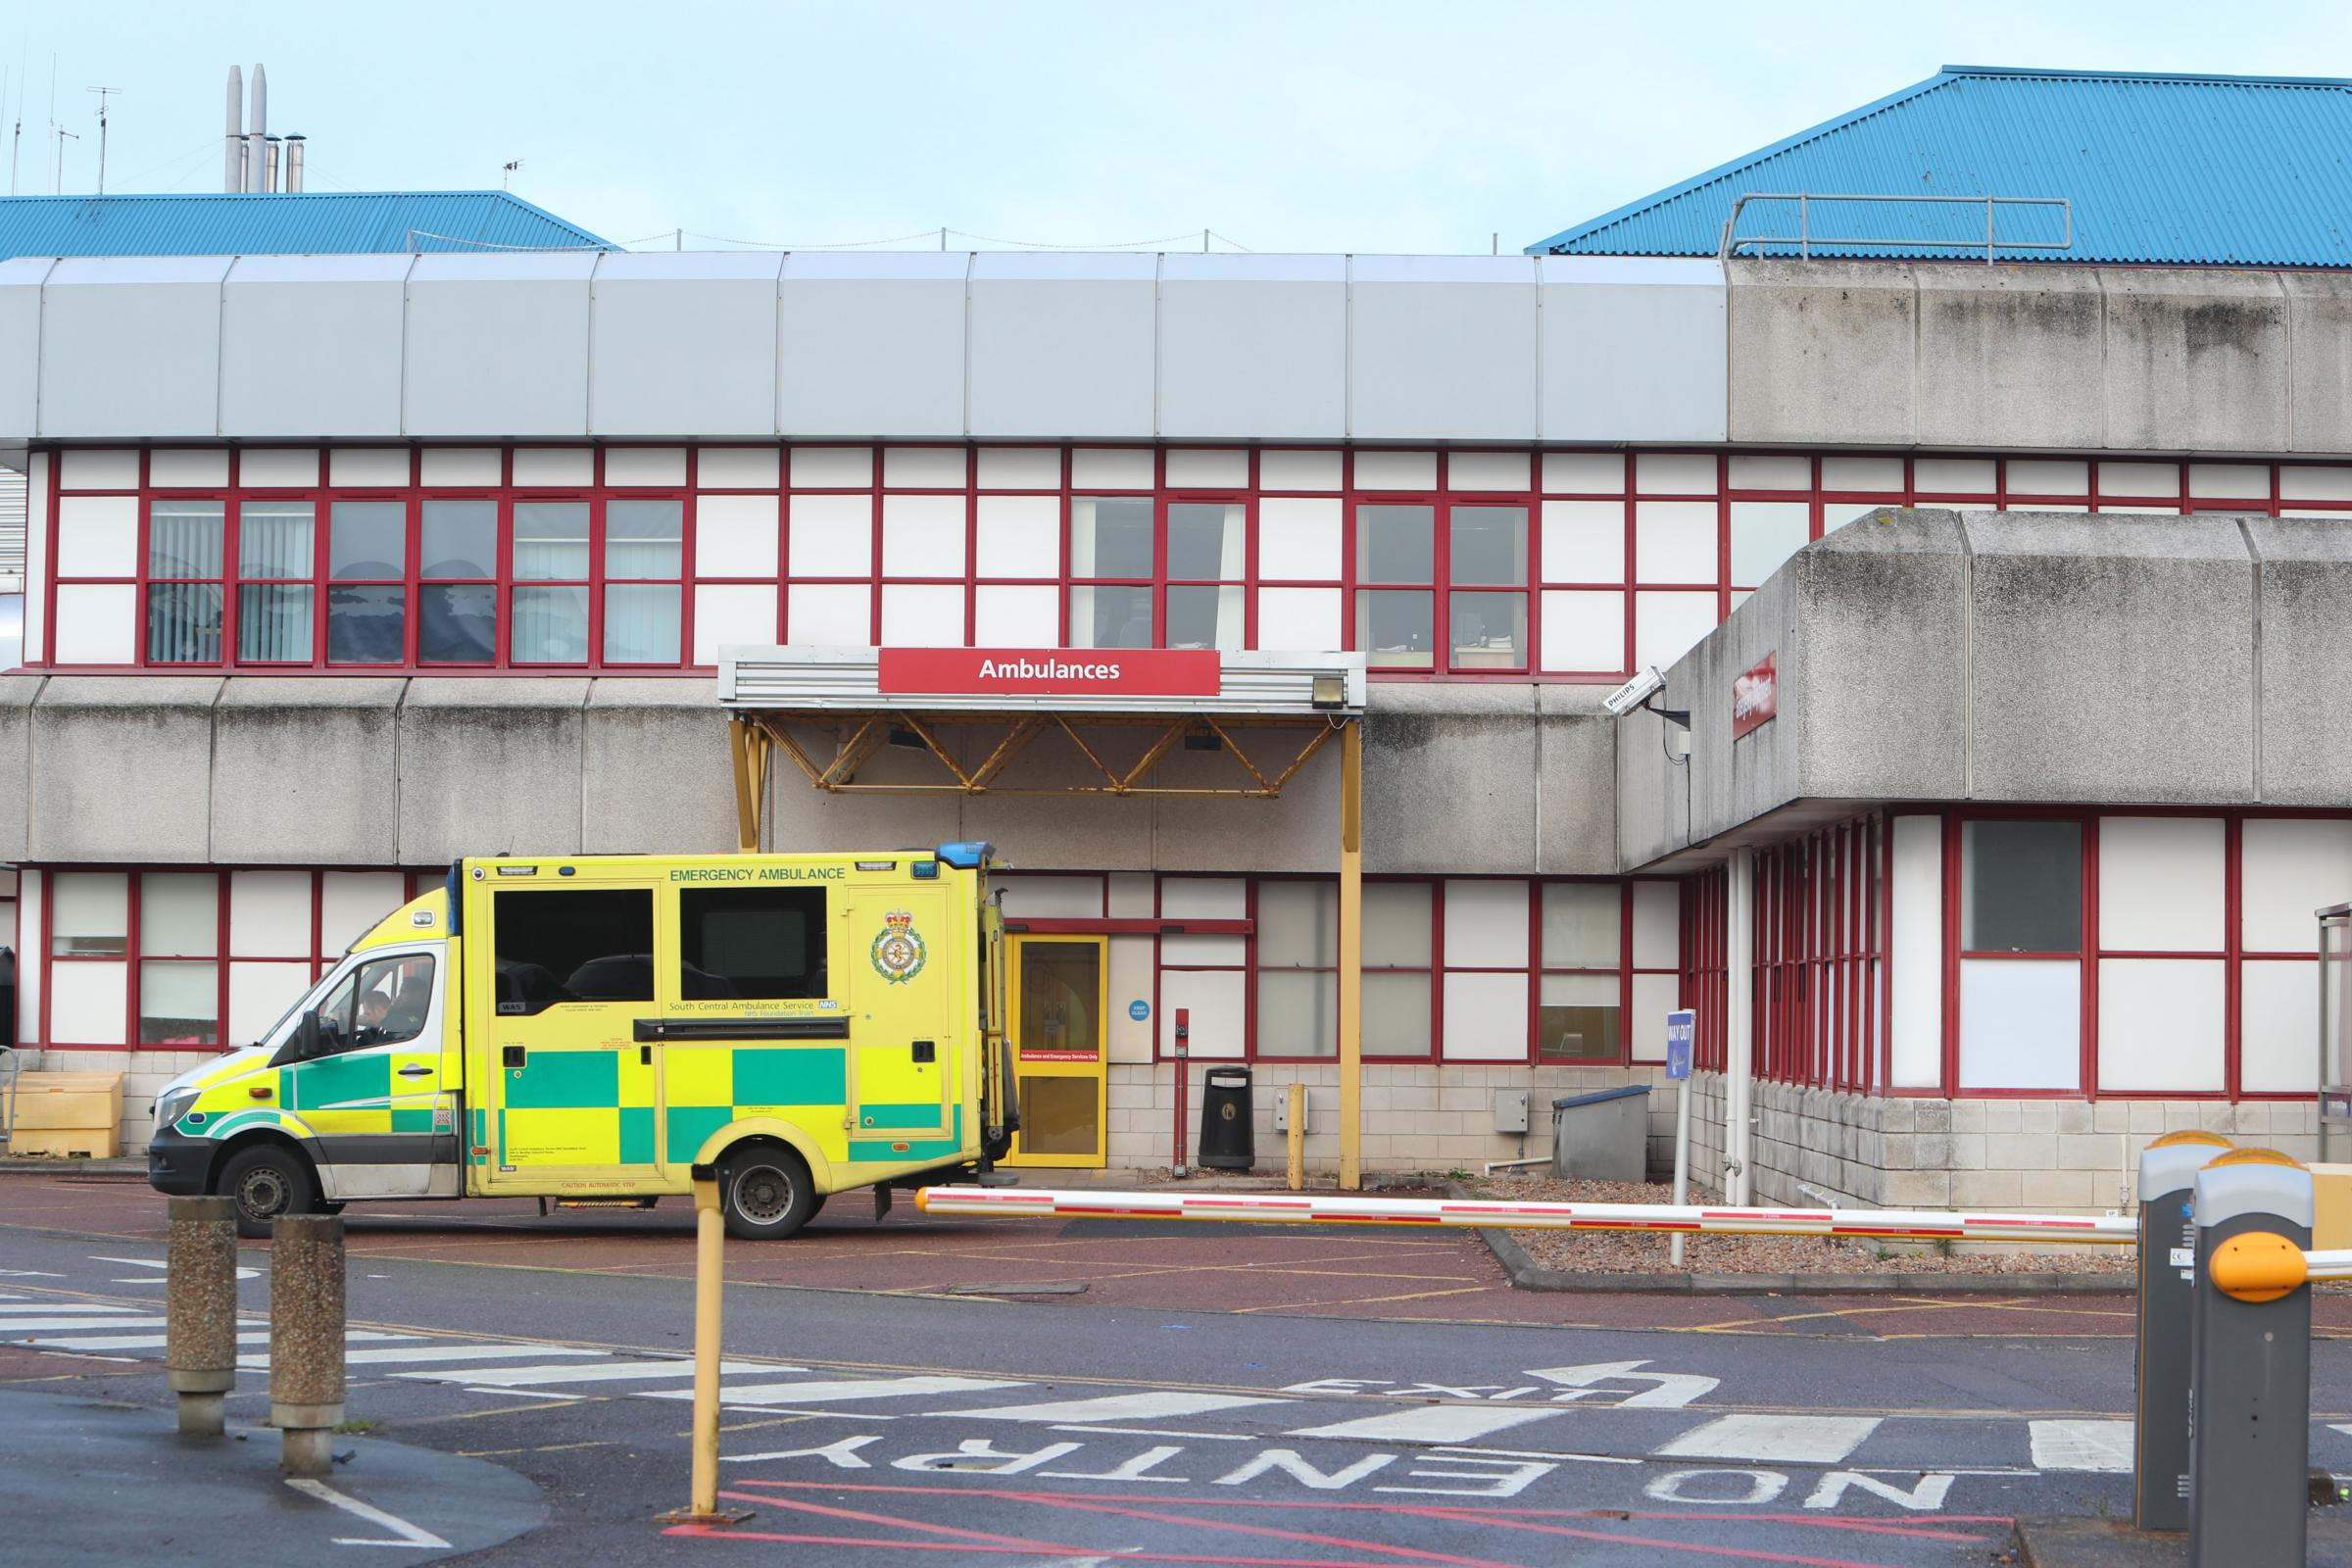 An ambulance waiting outside the Royal Bournemouth Hospital emergency department